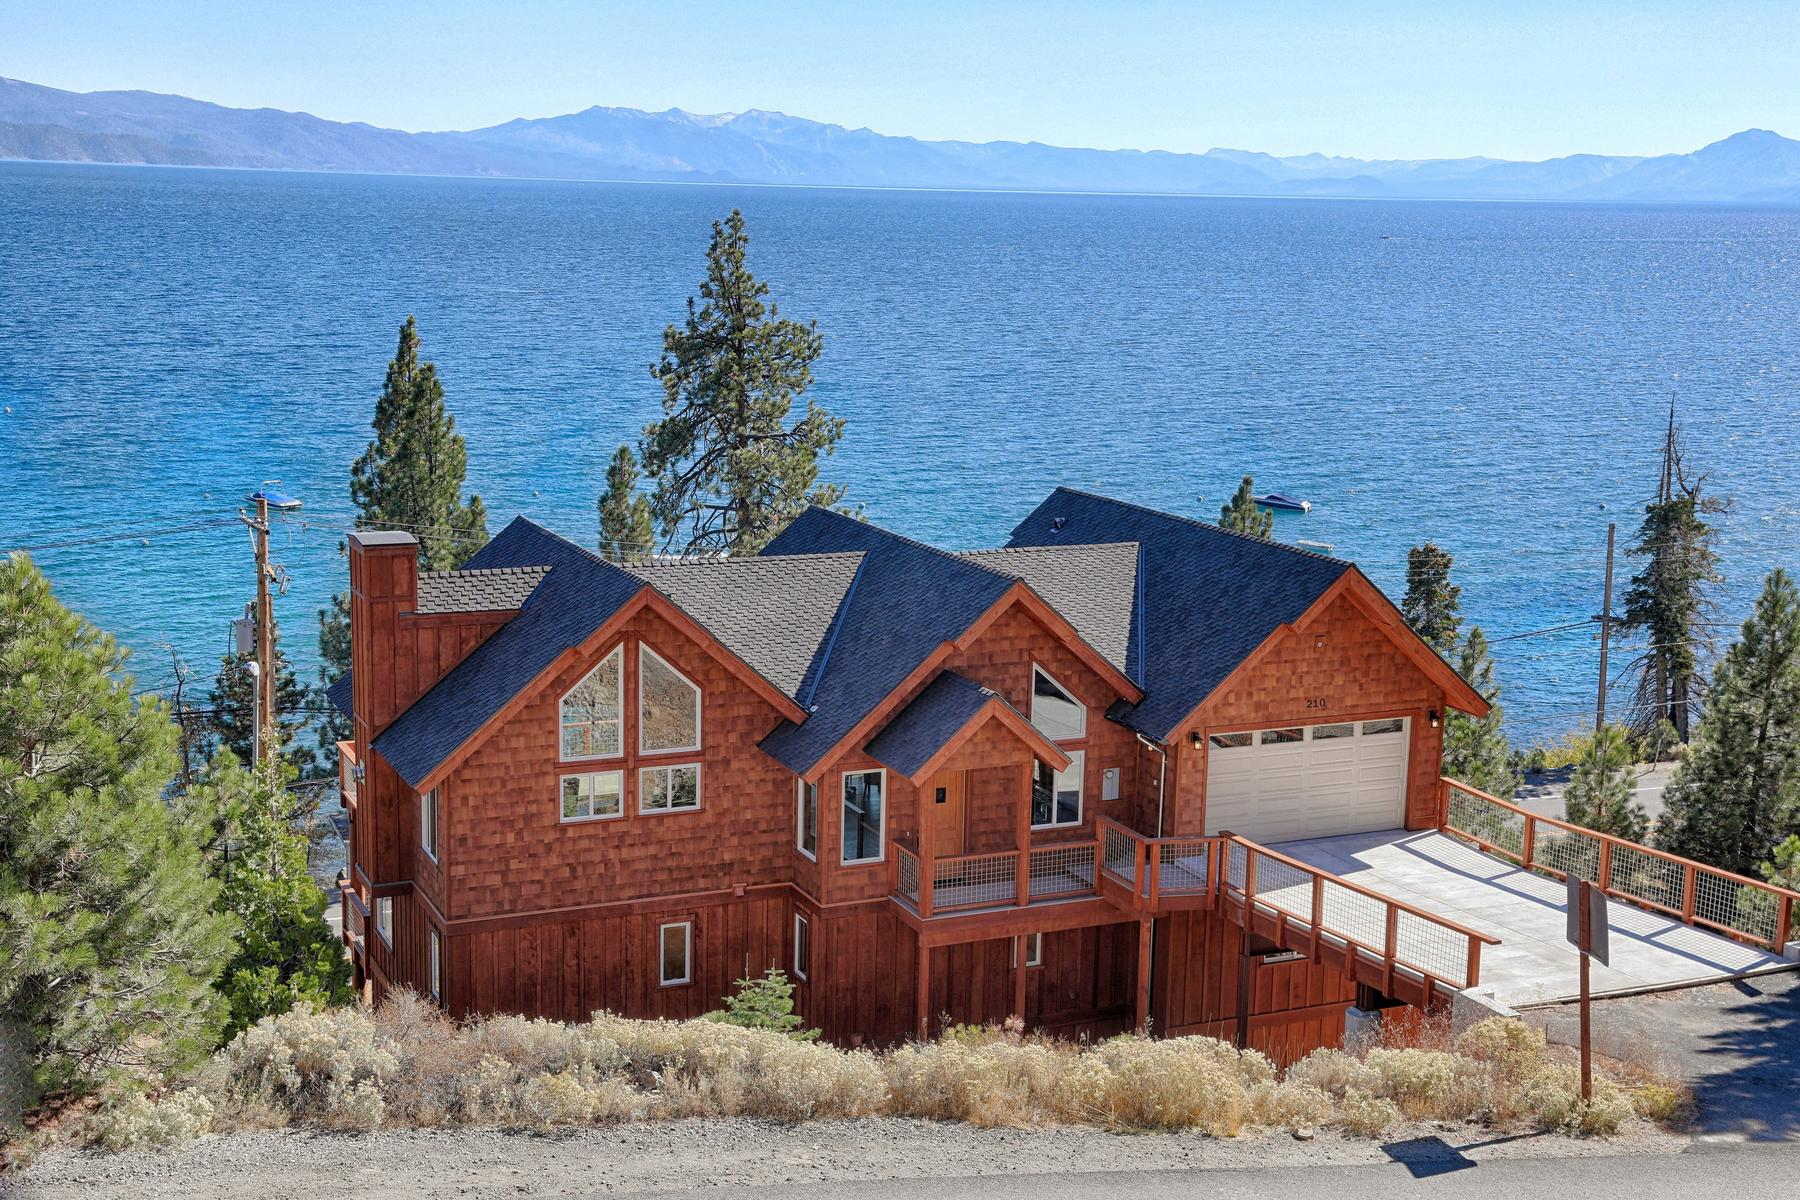 Single Family Home for Active at 210 Stag Lane, Tahoe Vista, CA 210 Stag Lane Tahoe Vista, California 96148 United States